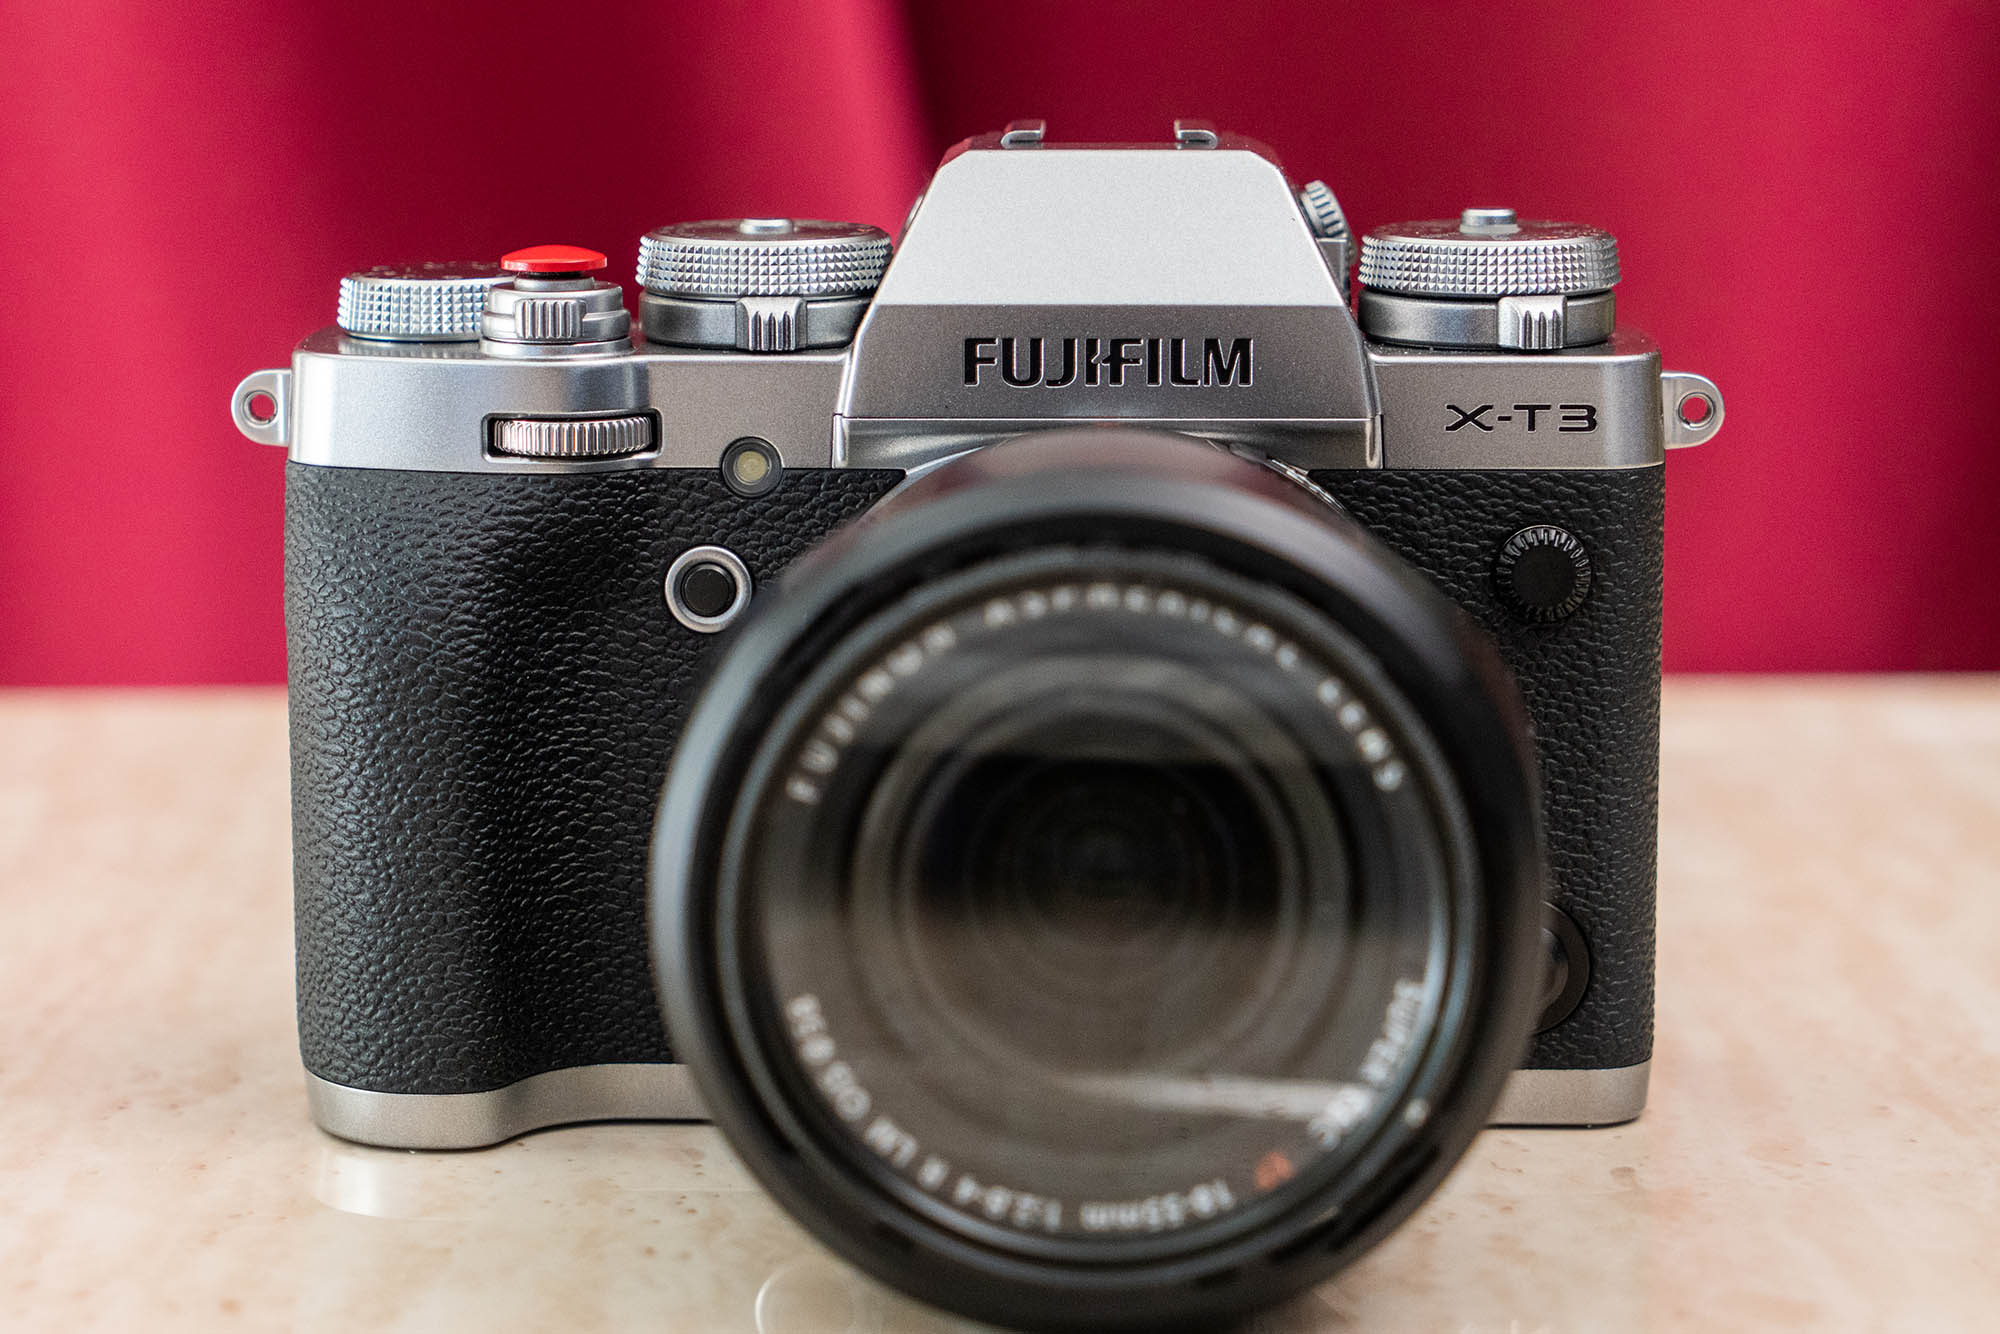 1 Year with the Fujifilm X-T3 - Was It Worth Buying?